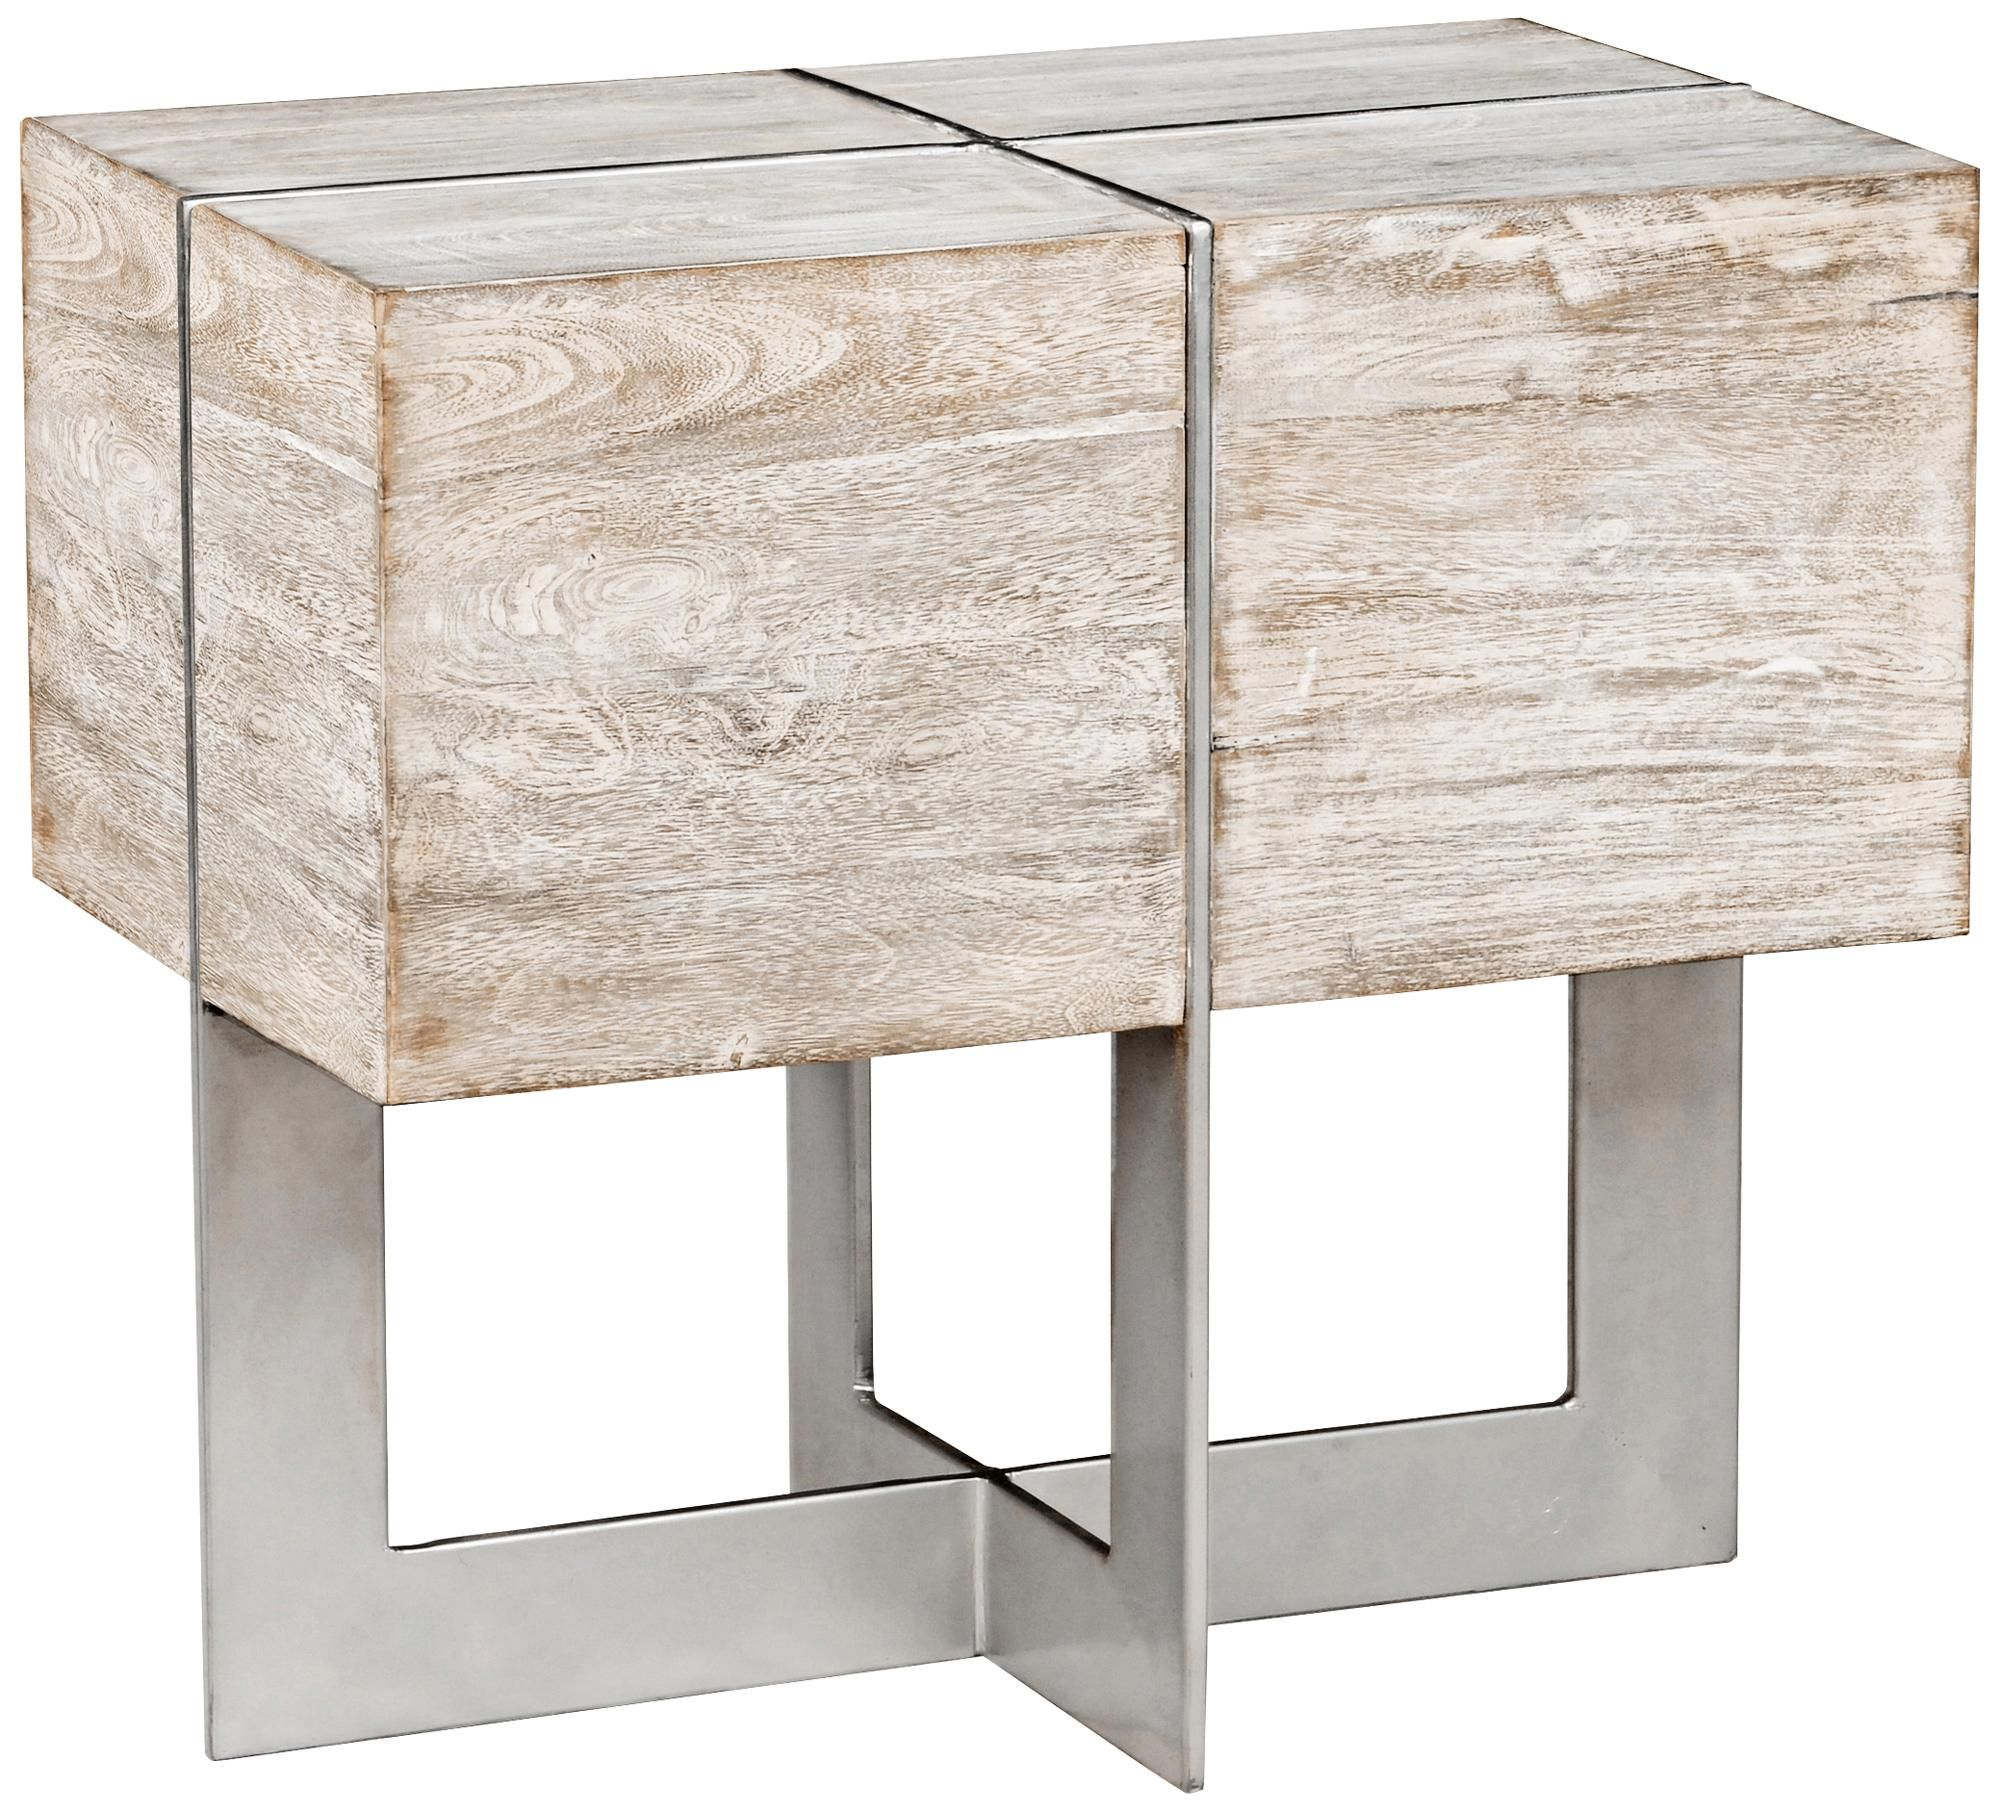 Desmond White Wash Solid Mango Wood Block End Table | Home Accents Pertaining To Parsons Walnut Top & Dark Steel Base 48x16 Console Tables (View 17 of 30)